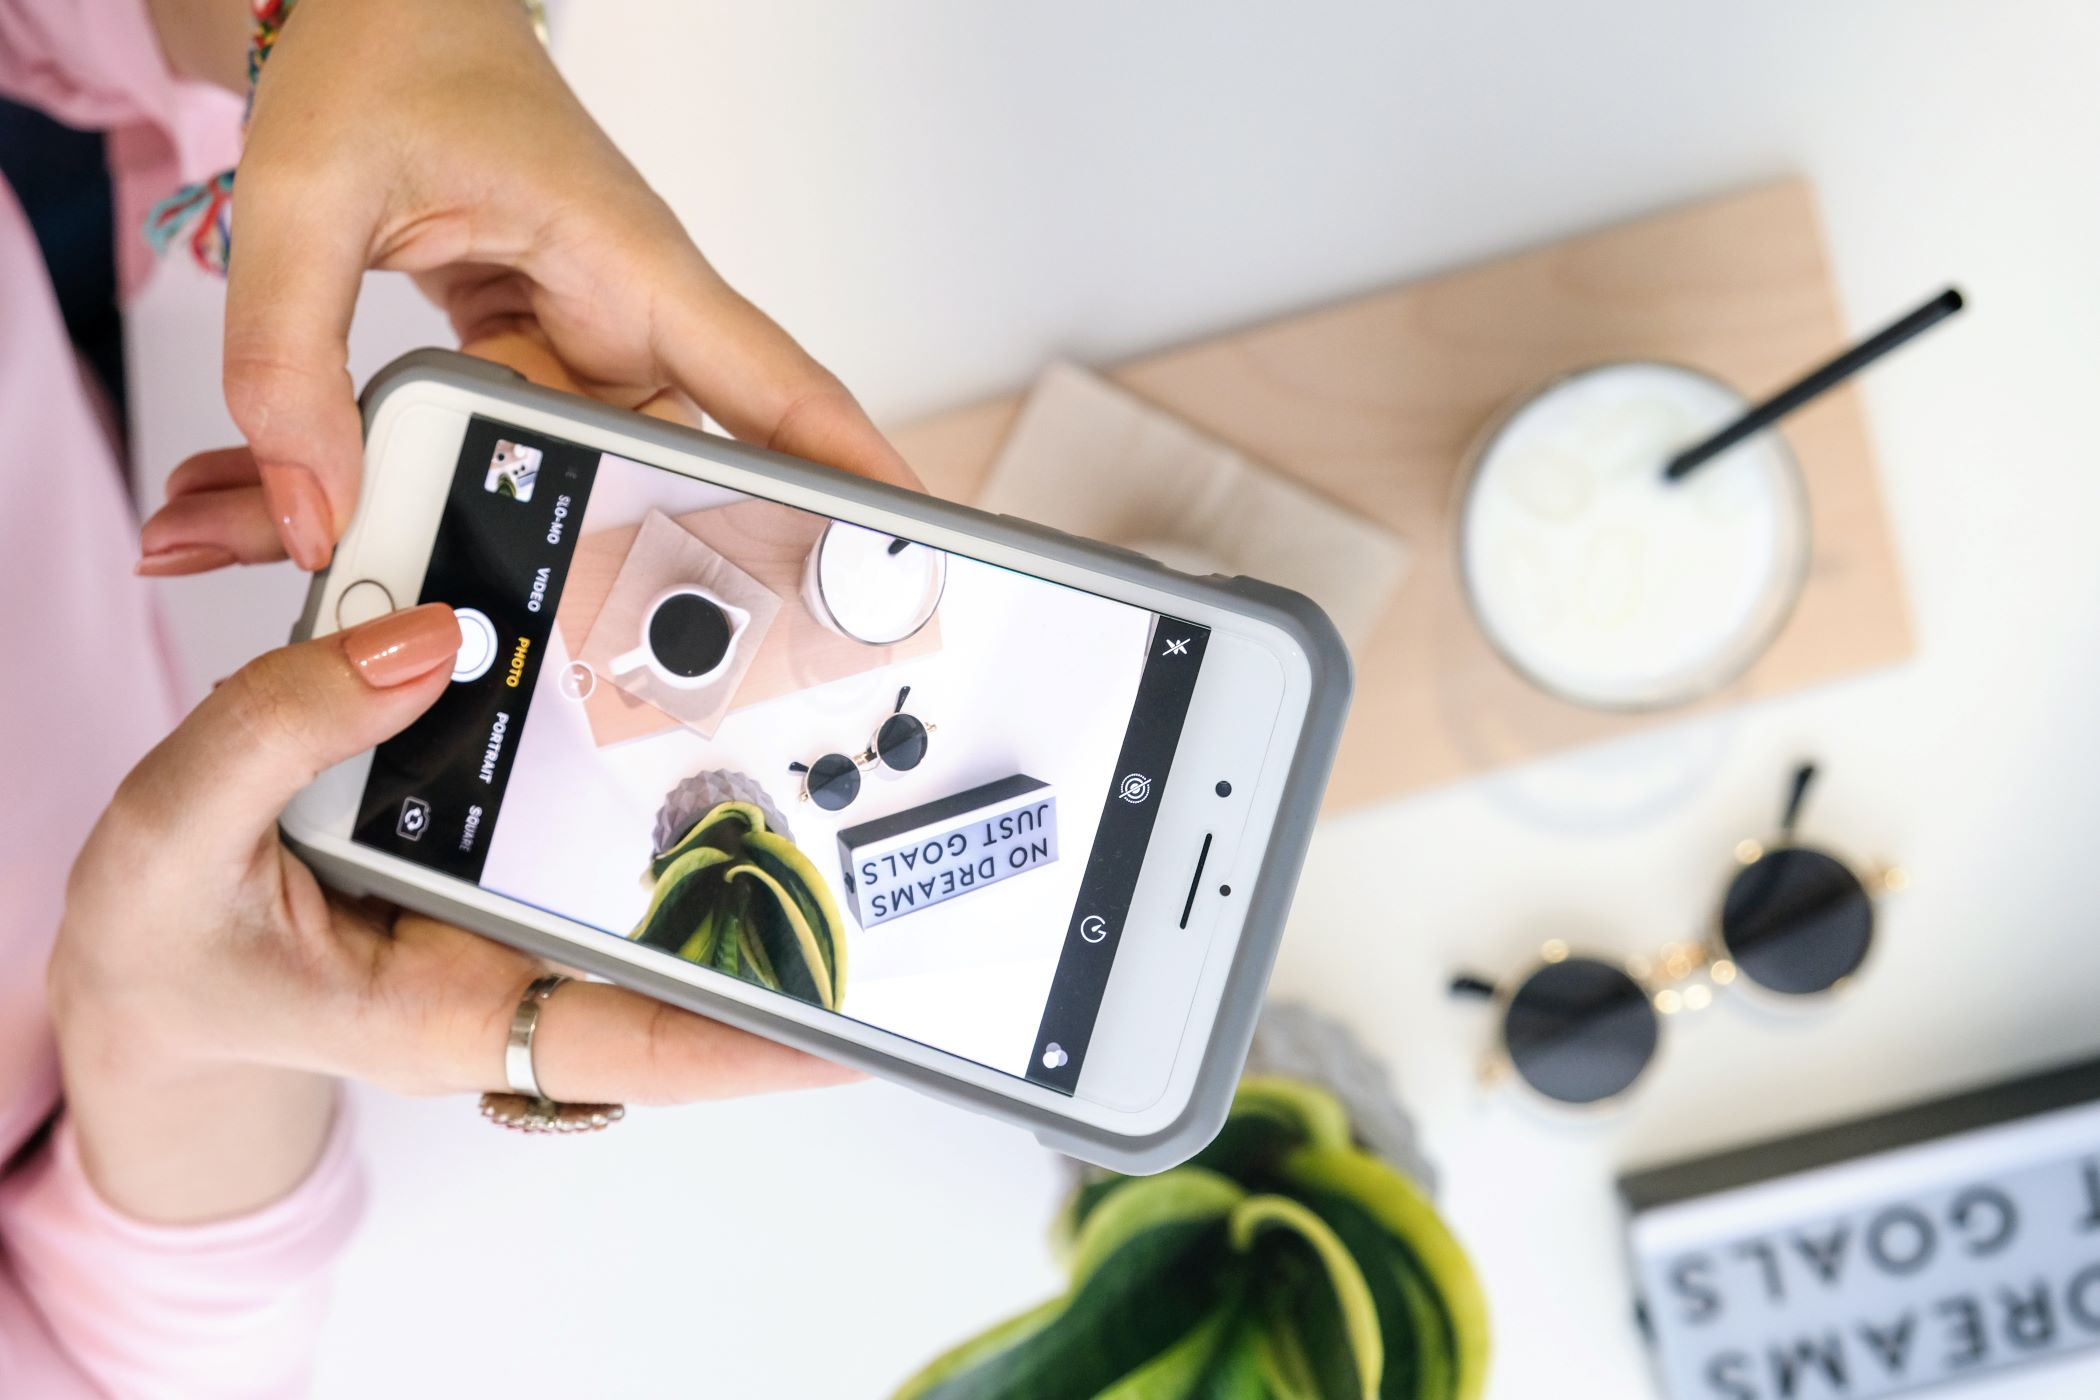 Mobile Market Research: Using Technology to Gain Deeper, Richer Insights